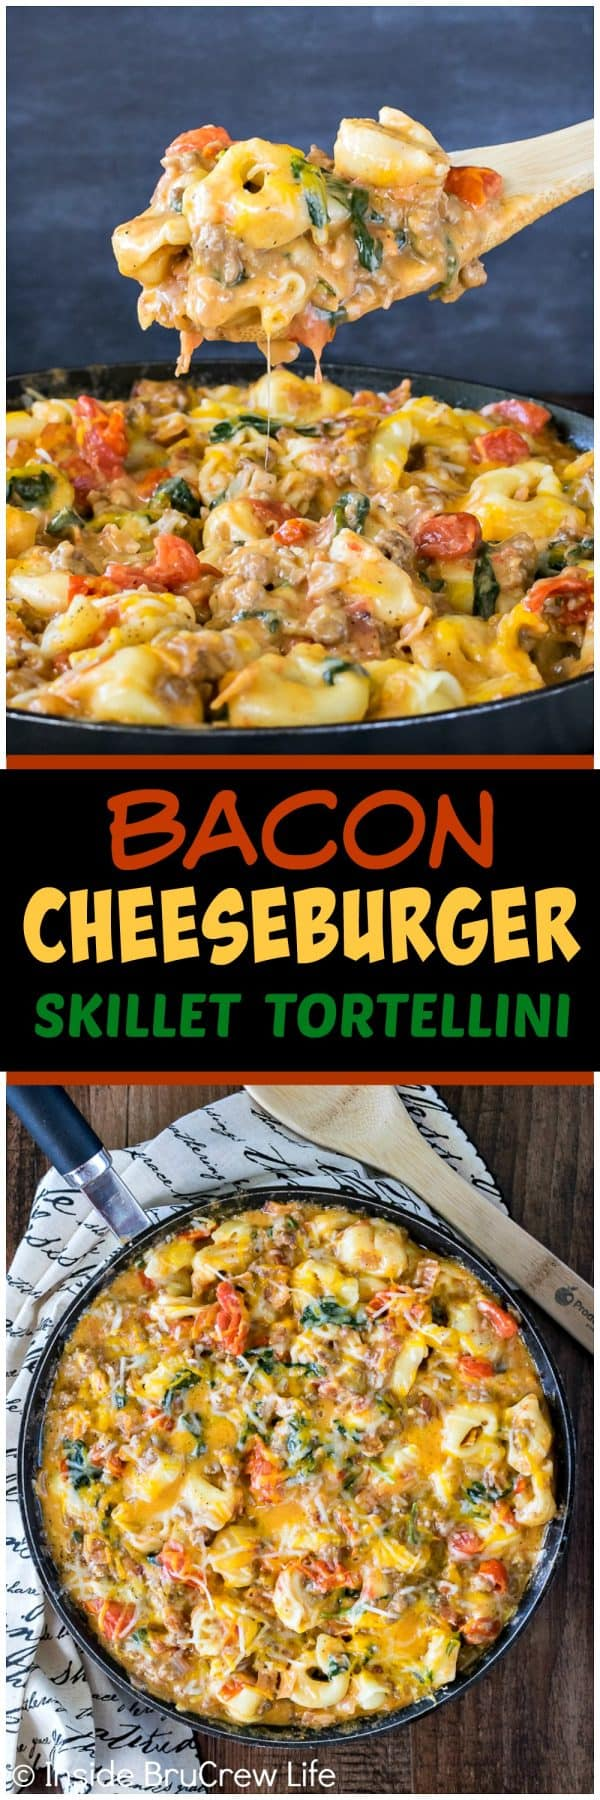 Bacon Cheeseburger Skillet Tortellini - this quick and easy pasta dinner is loaded with meats, veggies, and cheese. Great 30 minute dinner recipe for busy nights!